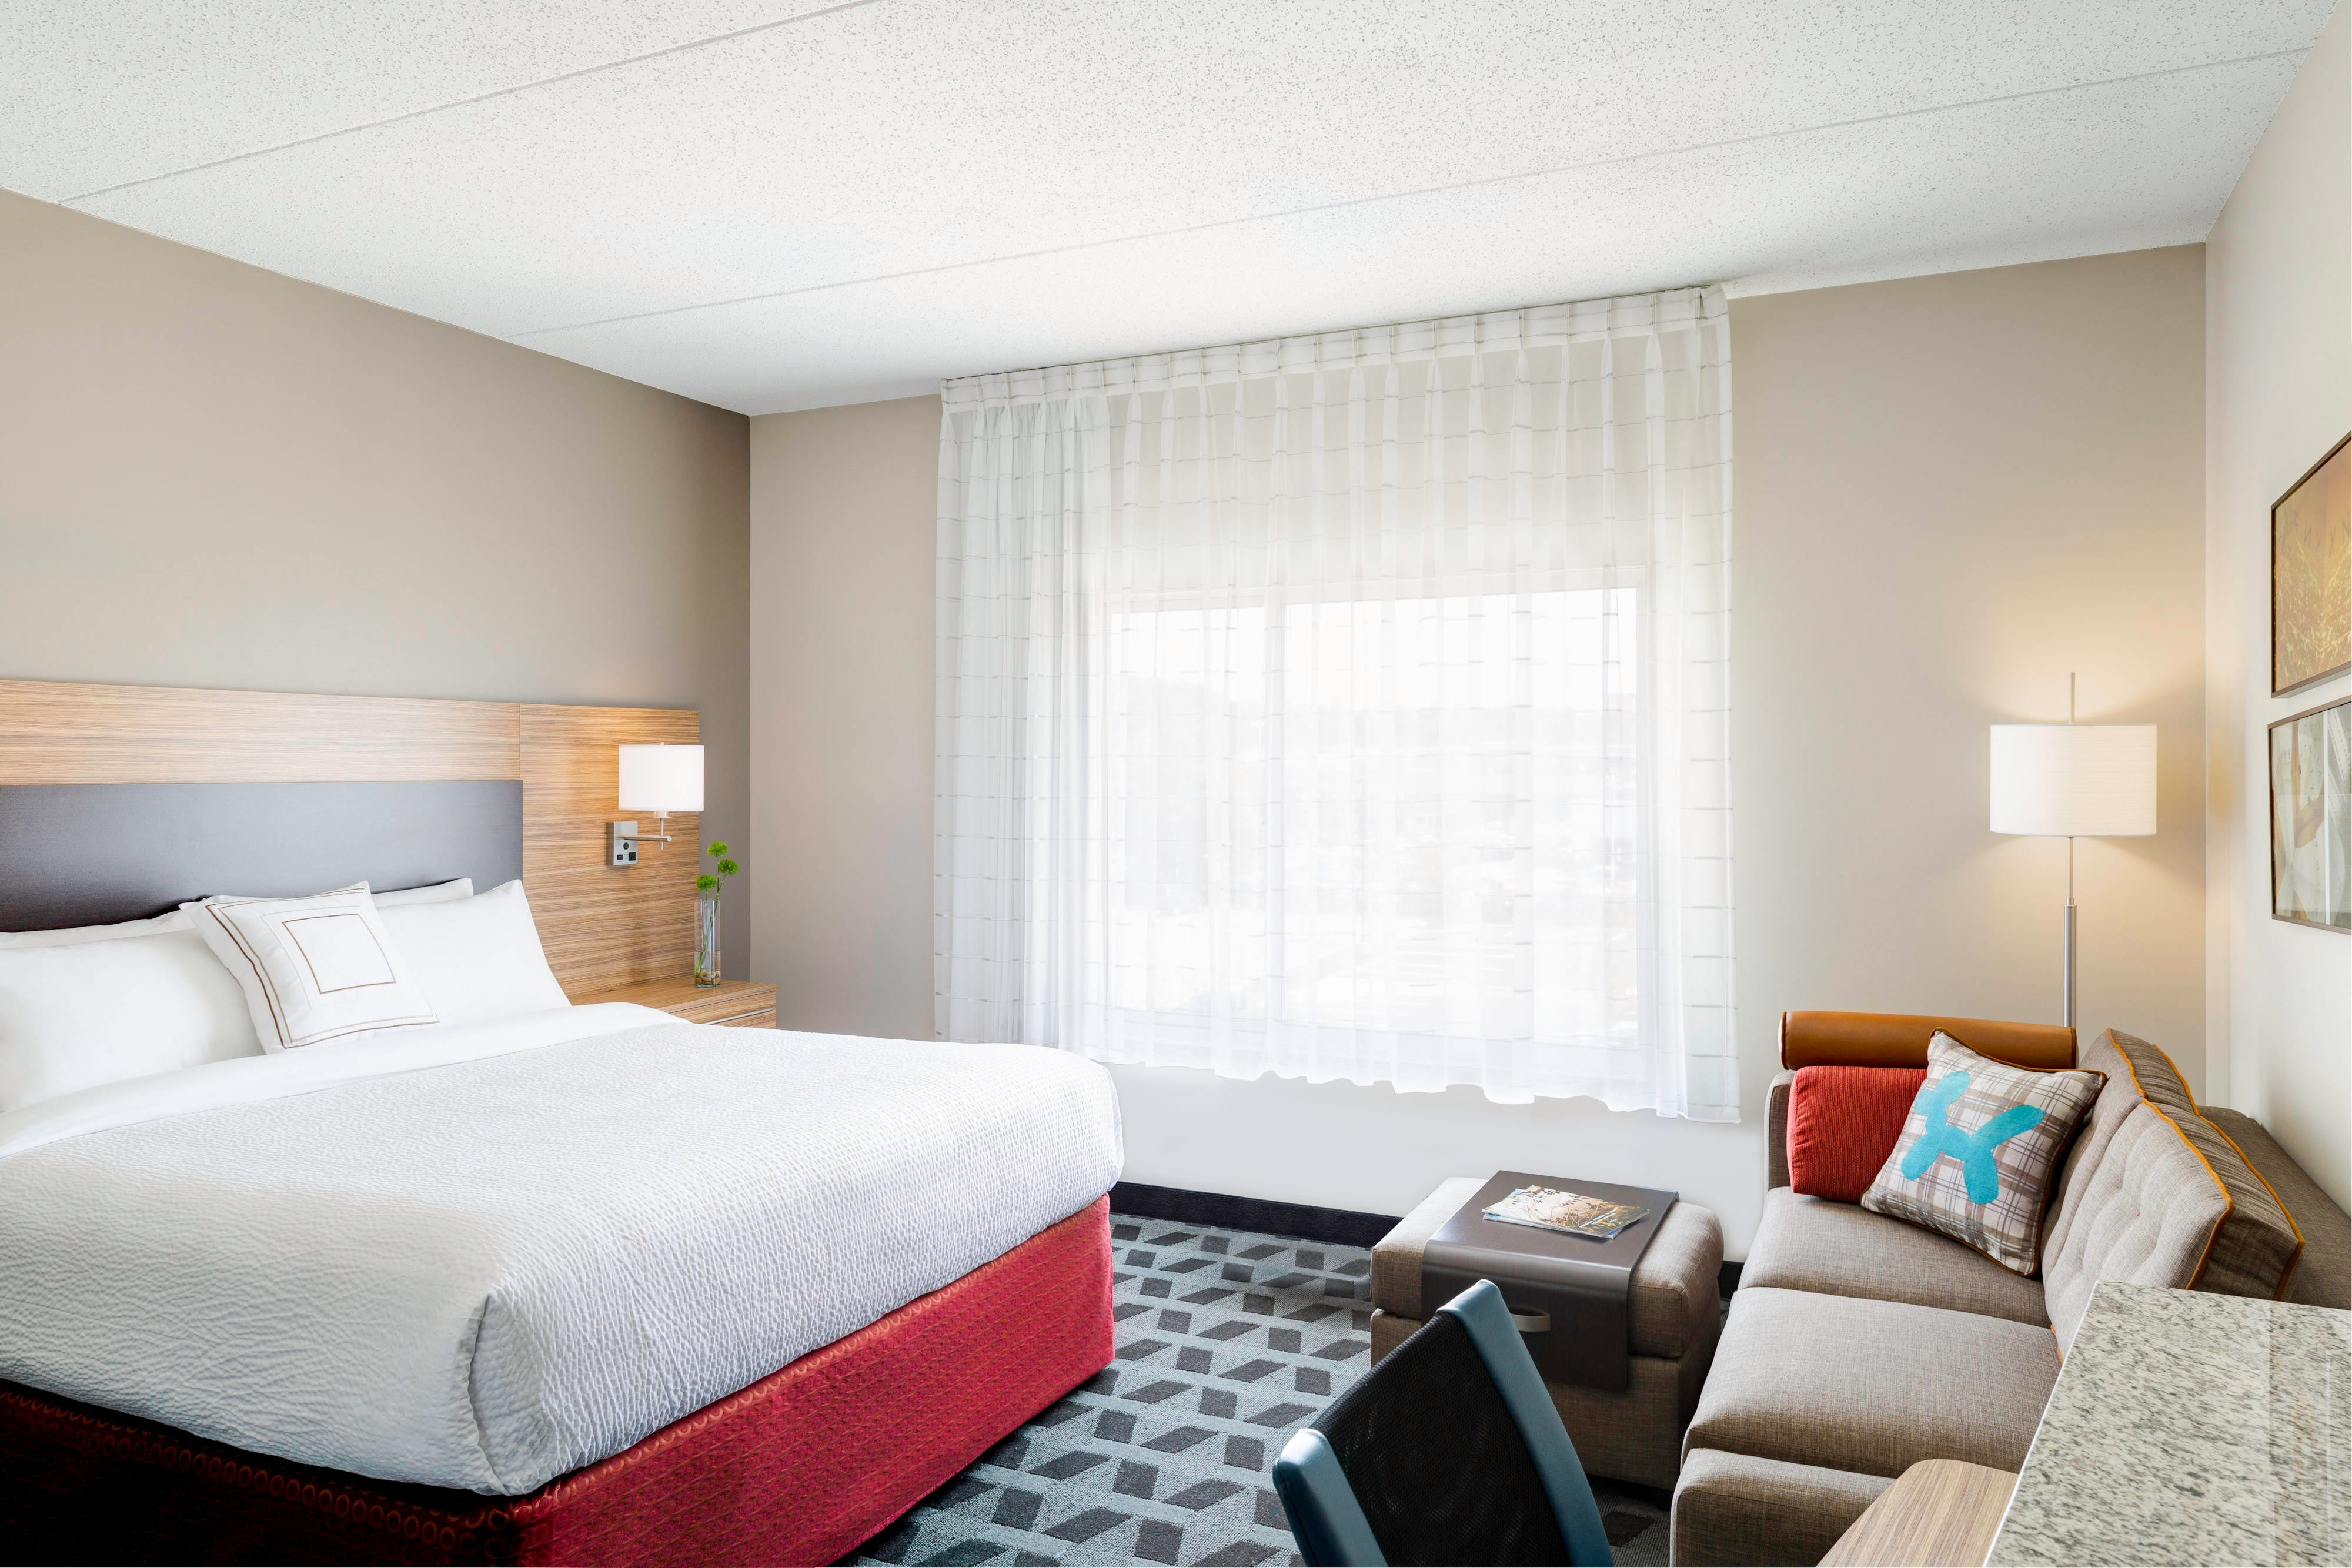 TownePlace Suites San Diego Downtown hotel amenities | Hotel room ...